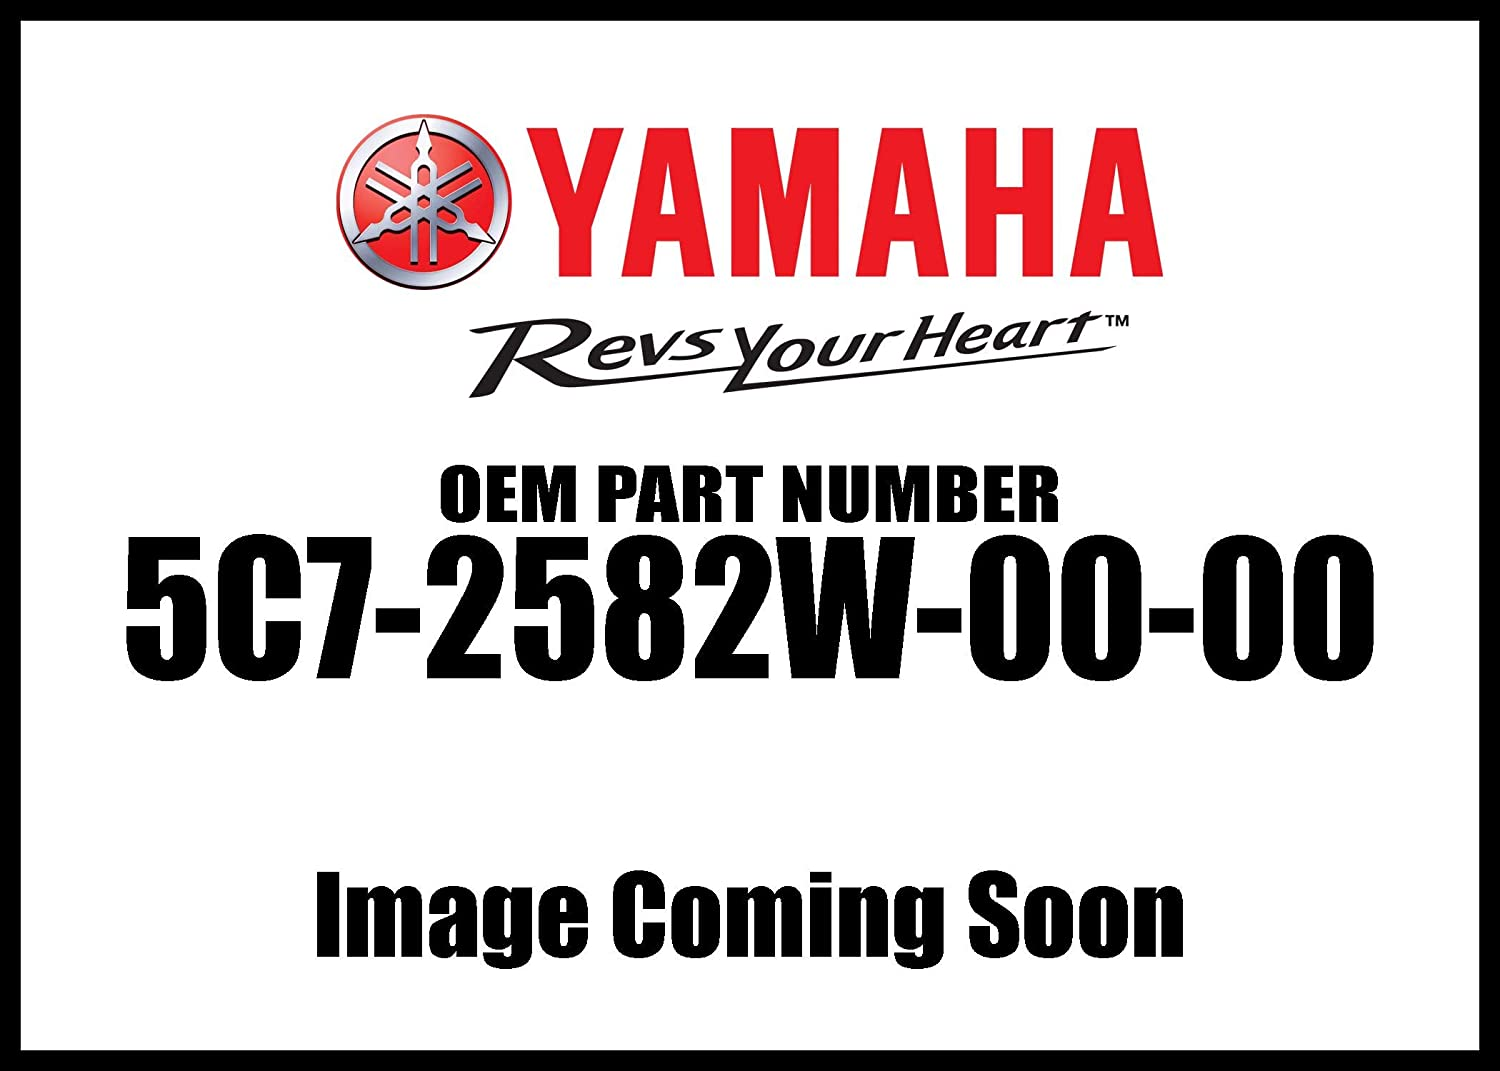 Yamaha 5C7-2582W-00-00 Disk, Rear Brake 2; 5C72582W0000 Made by Yamaha